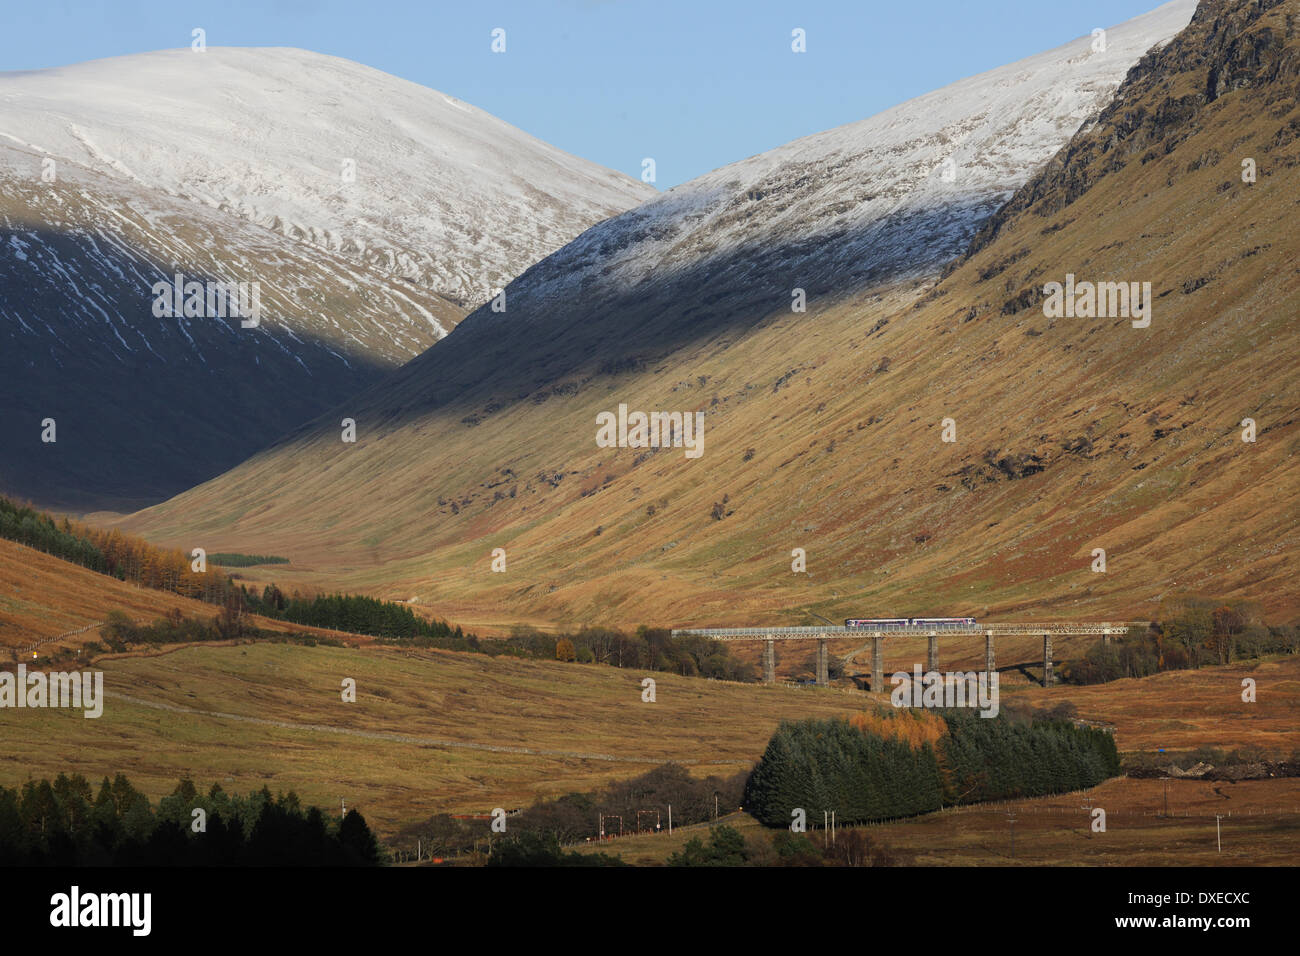 First Scotrail 156 Sprinter train crossing the Horseshoe viaduct Glen Auch nr Tyndrum, West Highland Line. - Stock Image